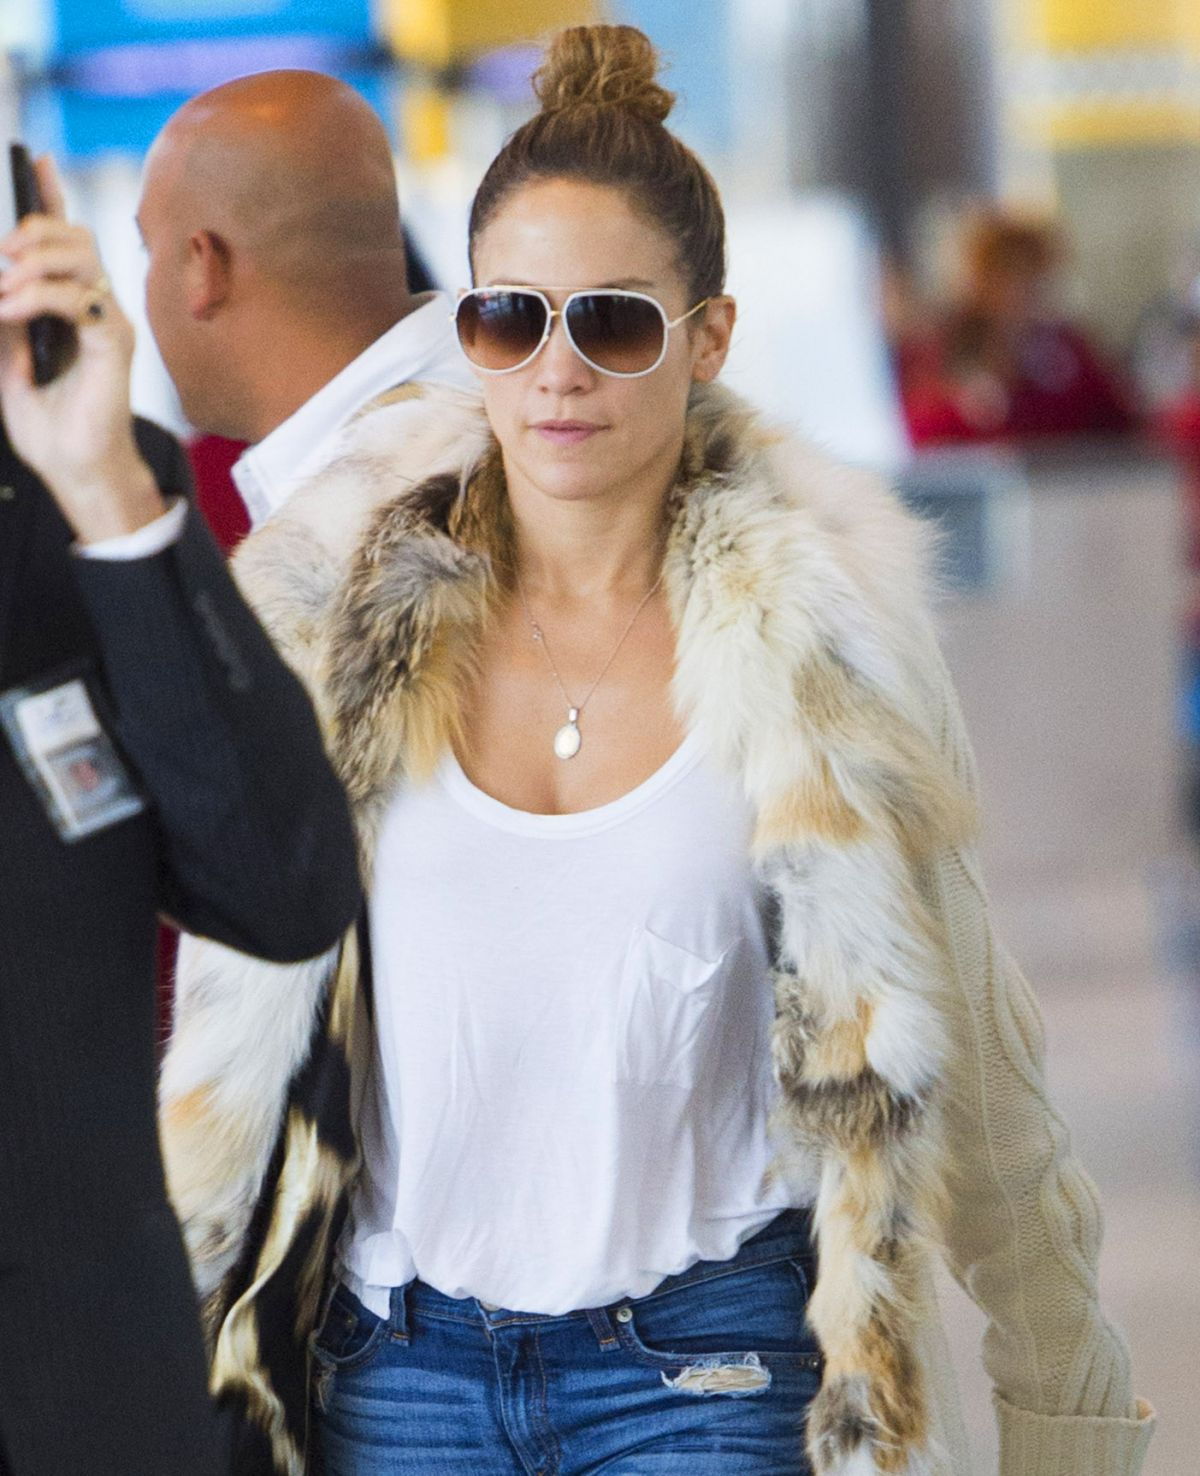 Jennifer Lopez At JFK Airport